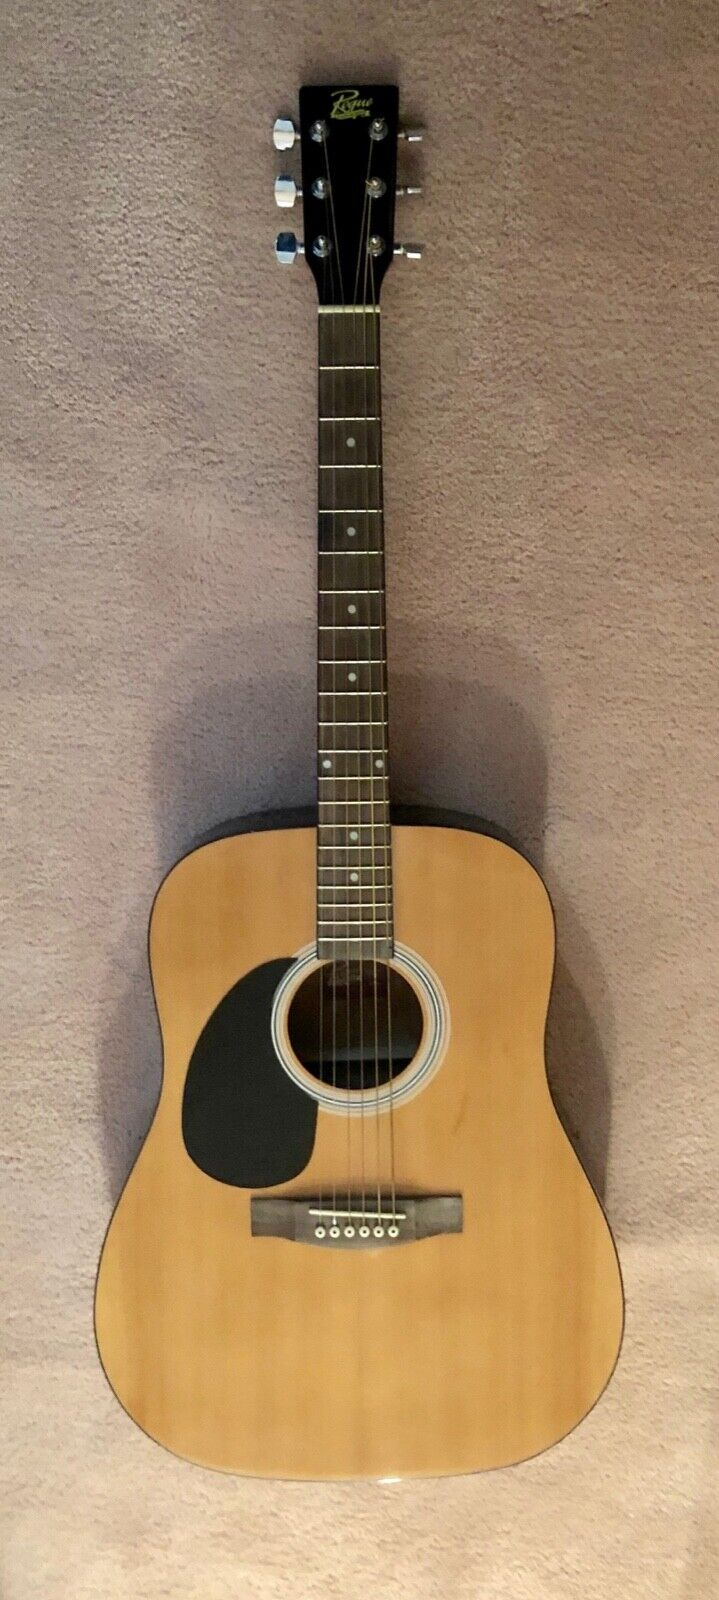 Rogue RG-624 Acoustic Left Handed Guitar.